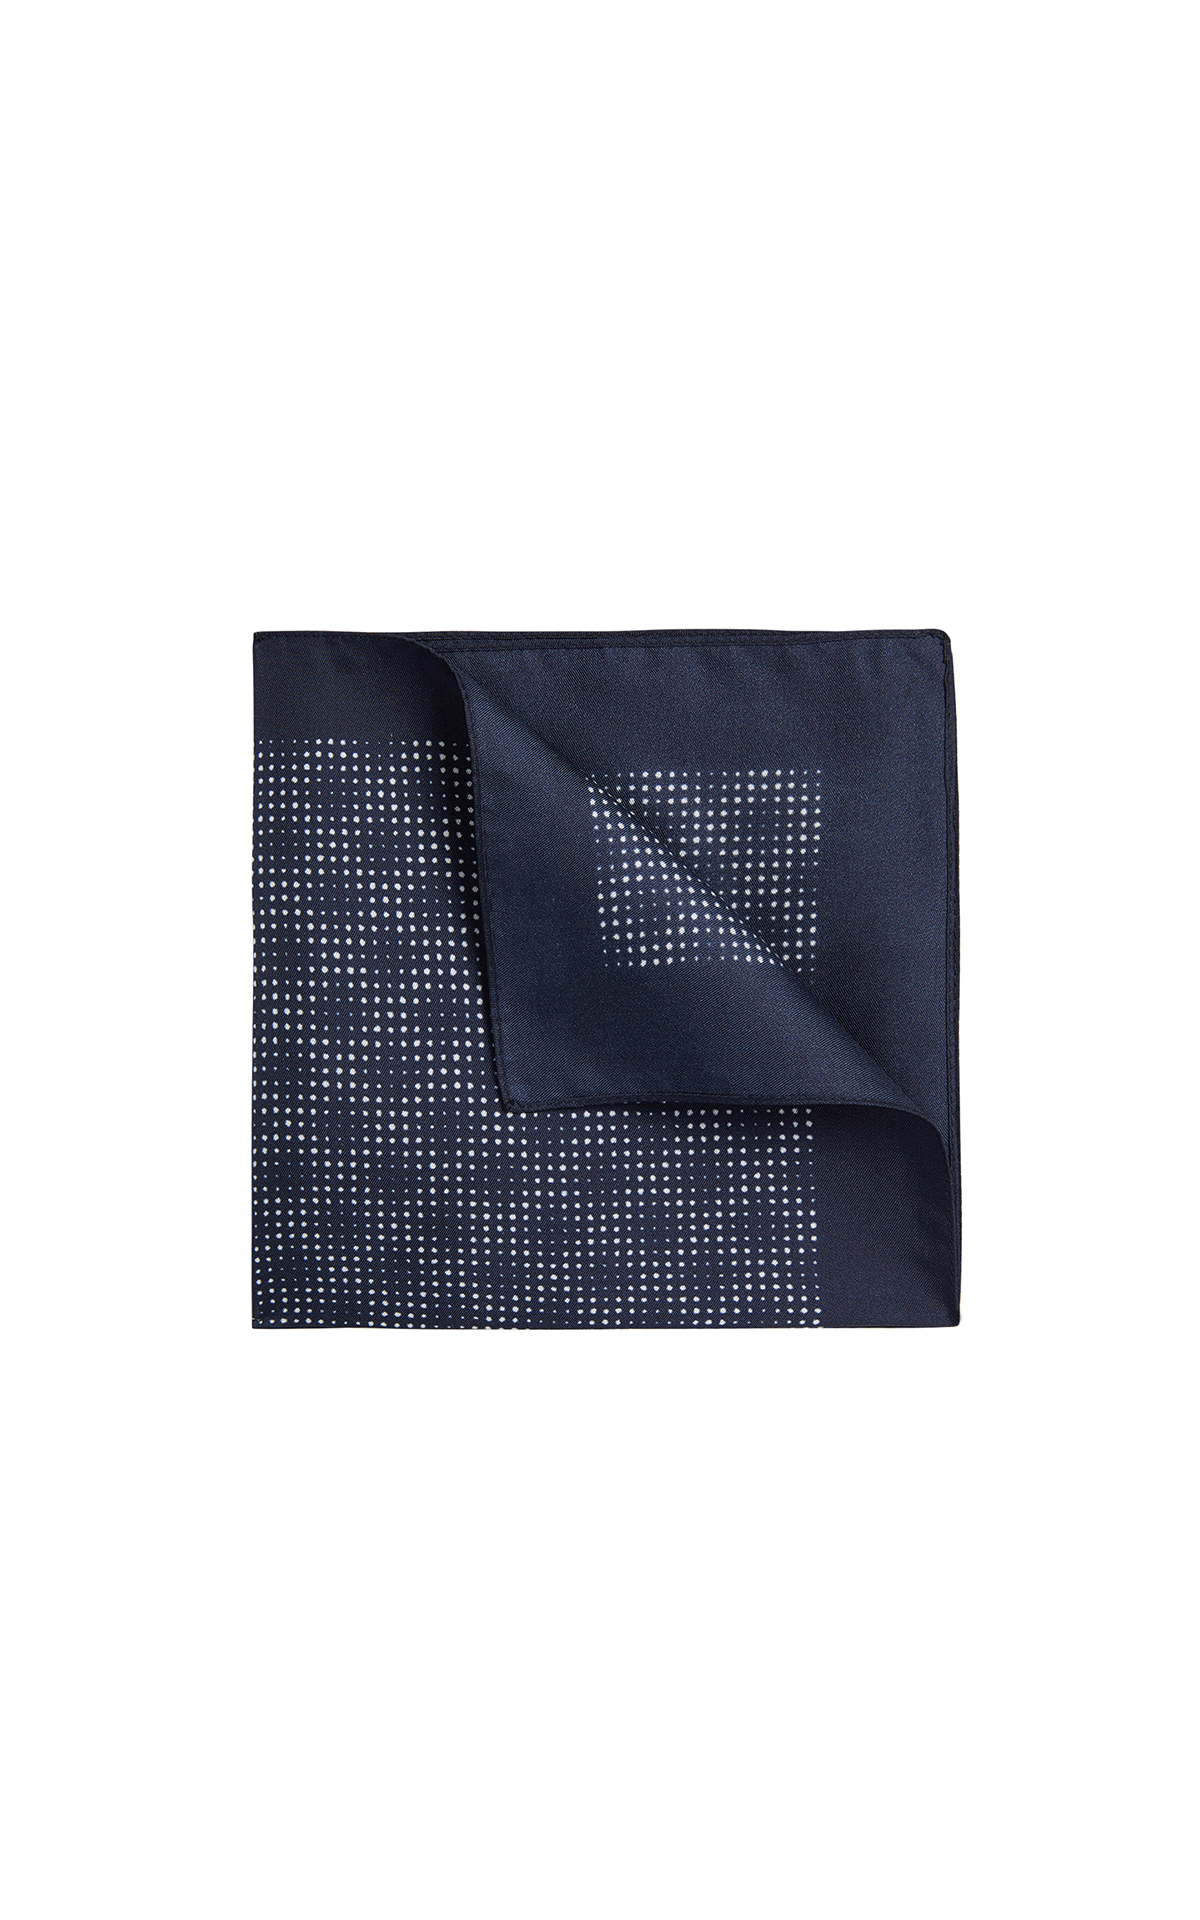 BOSS Men's Silk pocket square at The Bicester Village Shopping Collection